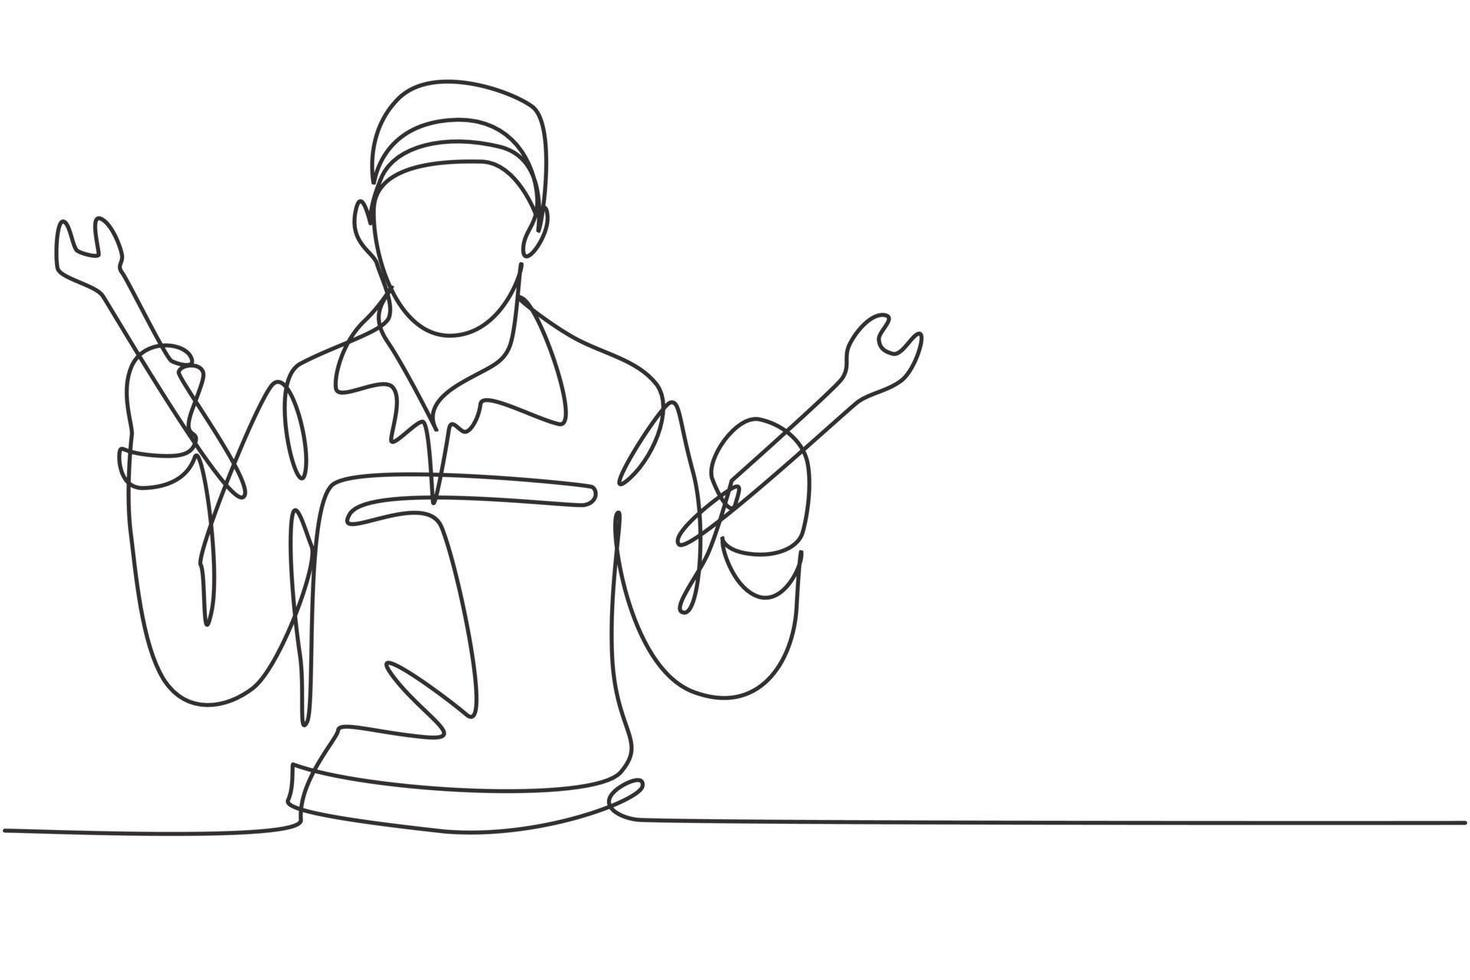 Single one line drawing mechanic with celebrate gesture and holding wrench works to fix broken car engine in garage. Success business. Modern continuous line draw design graphic vector illustration